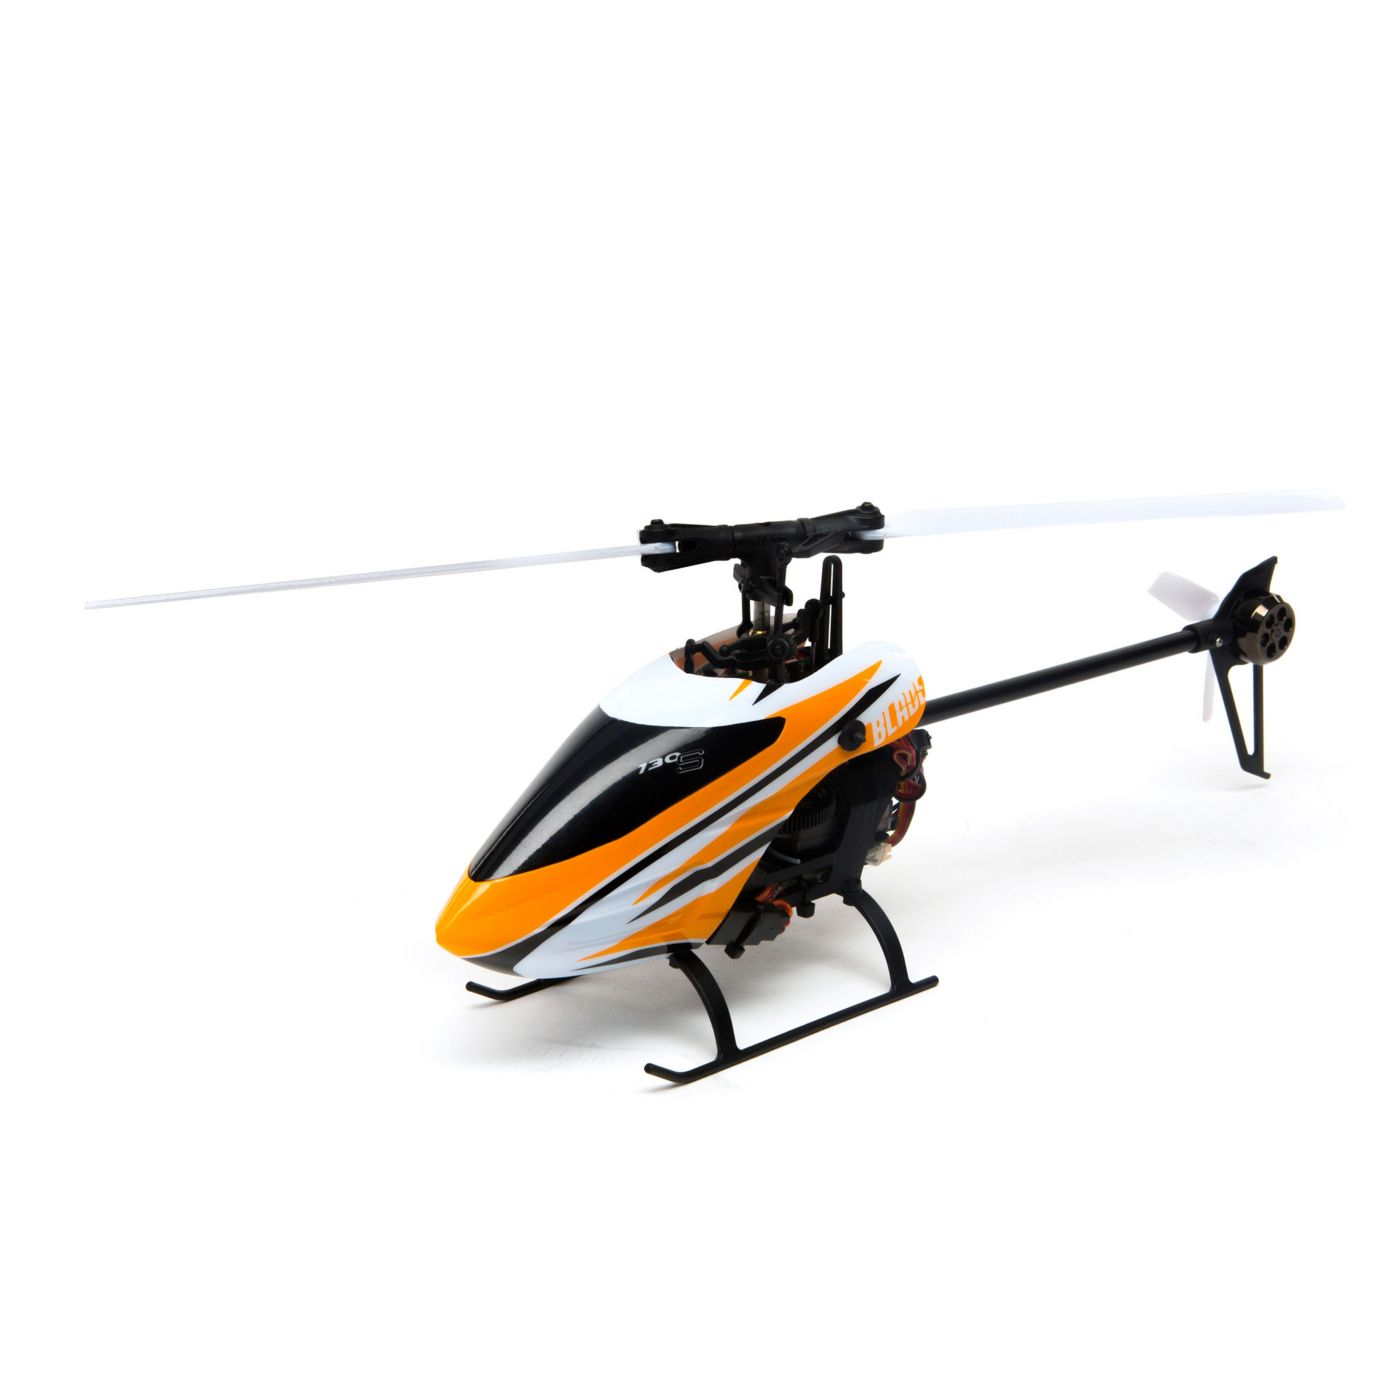 silverlit heli with Blade 130 Rtf Inclusief Safe Technologie P 32272 on Nine Eagles Galaxy Visitor Rtf Groen P 19539 furthermore Blade Micro Apache Bnf P 22567 additionally Hubsan Fpv Video Bril P 9604 additionally Syma S107 Rc Helicopter Only 19 83 Reg 129 99 together with F 1208502 Sil4891813860273.